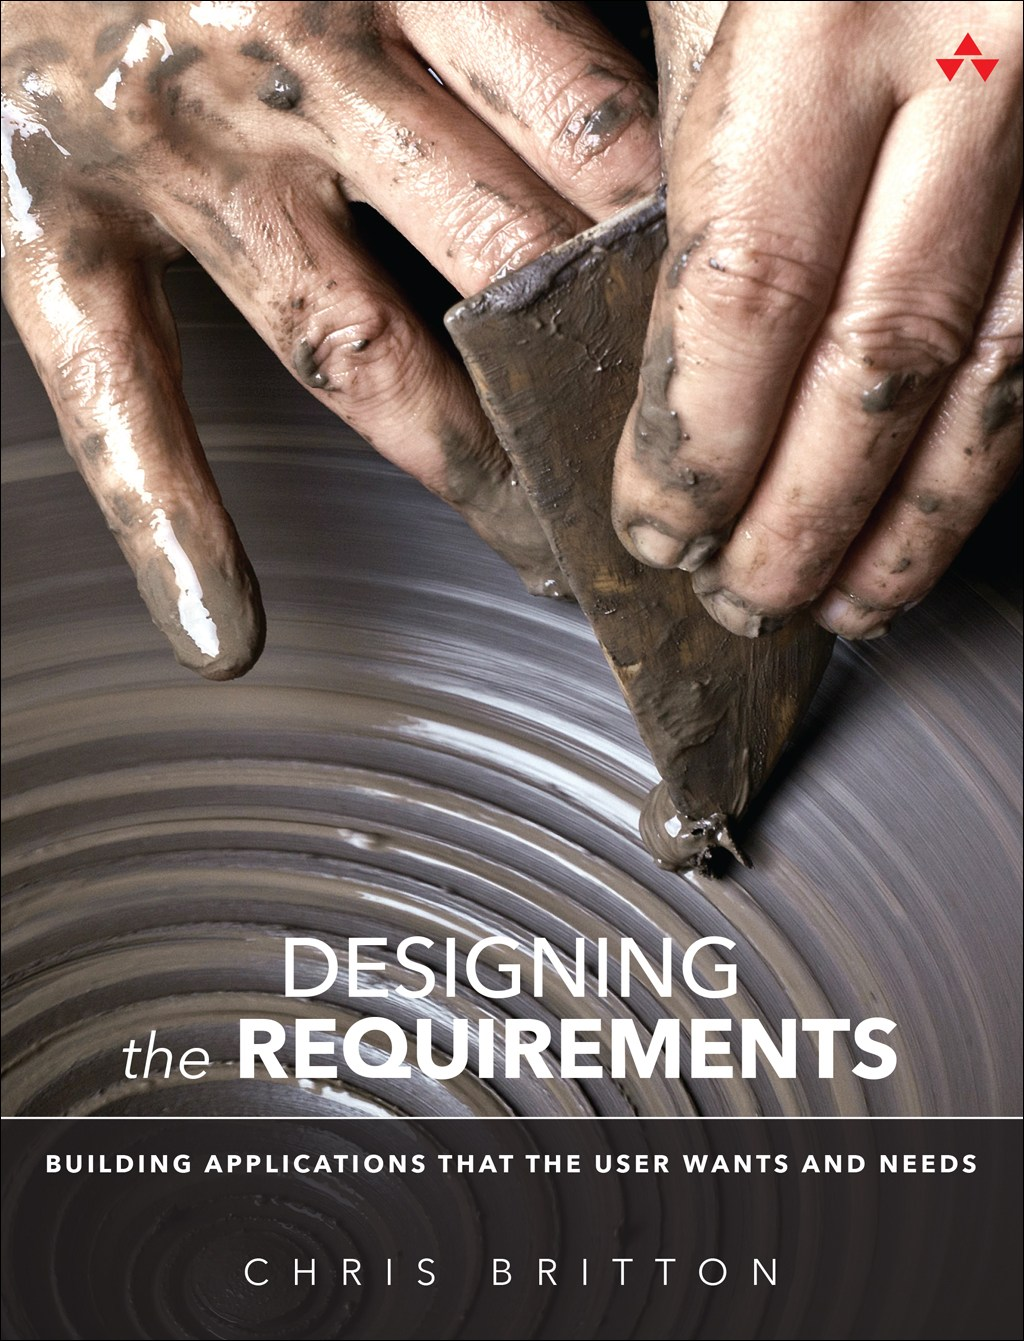 Designing the Requirements: Building Applications that the User Wants and Needs